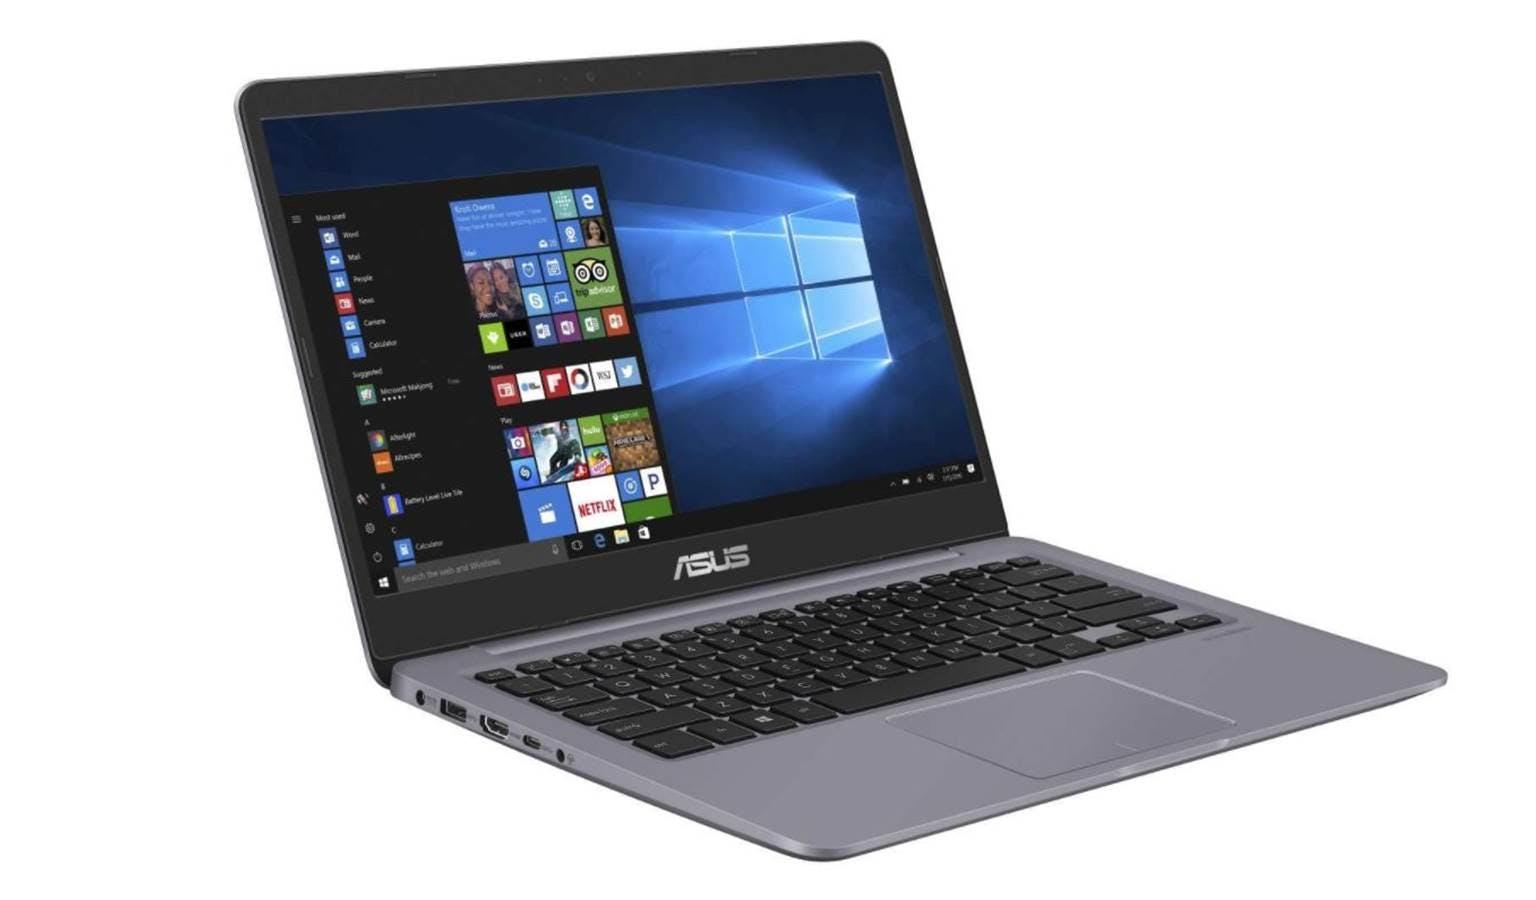 ASUS X411UF-BV070T i5-8250U Processor 1.6GHz (6M Cache, Up to 3.4GHz) Windows 10 Home (64-bit) NVIDIA® GeForce® GT MX130 with 2GB...